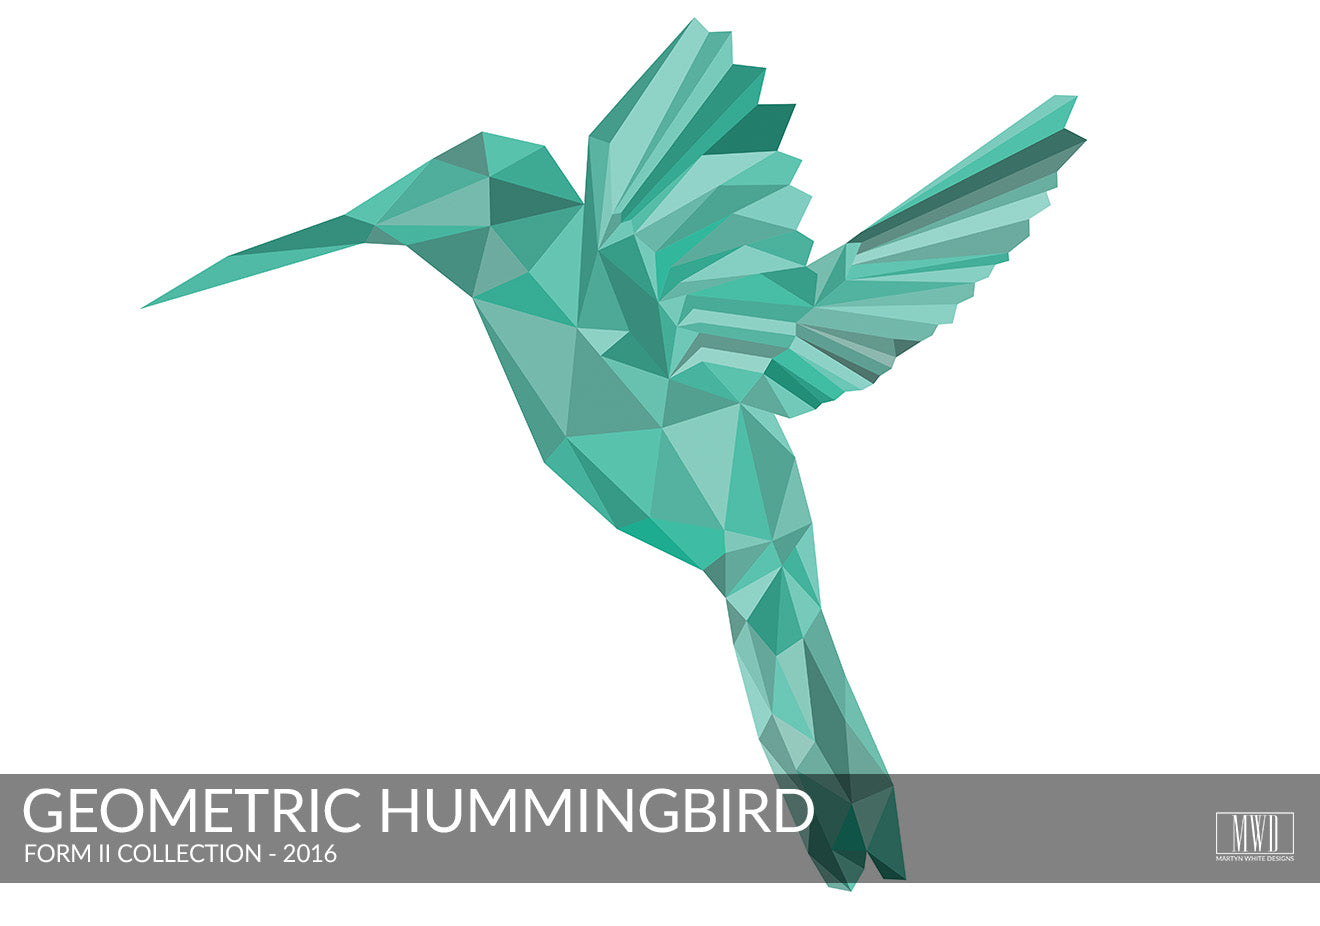 Form II Geometric Hummingbird in colour Art Print Portfolio